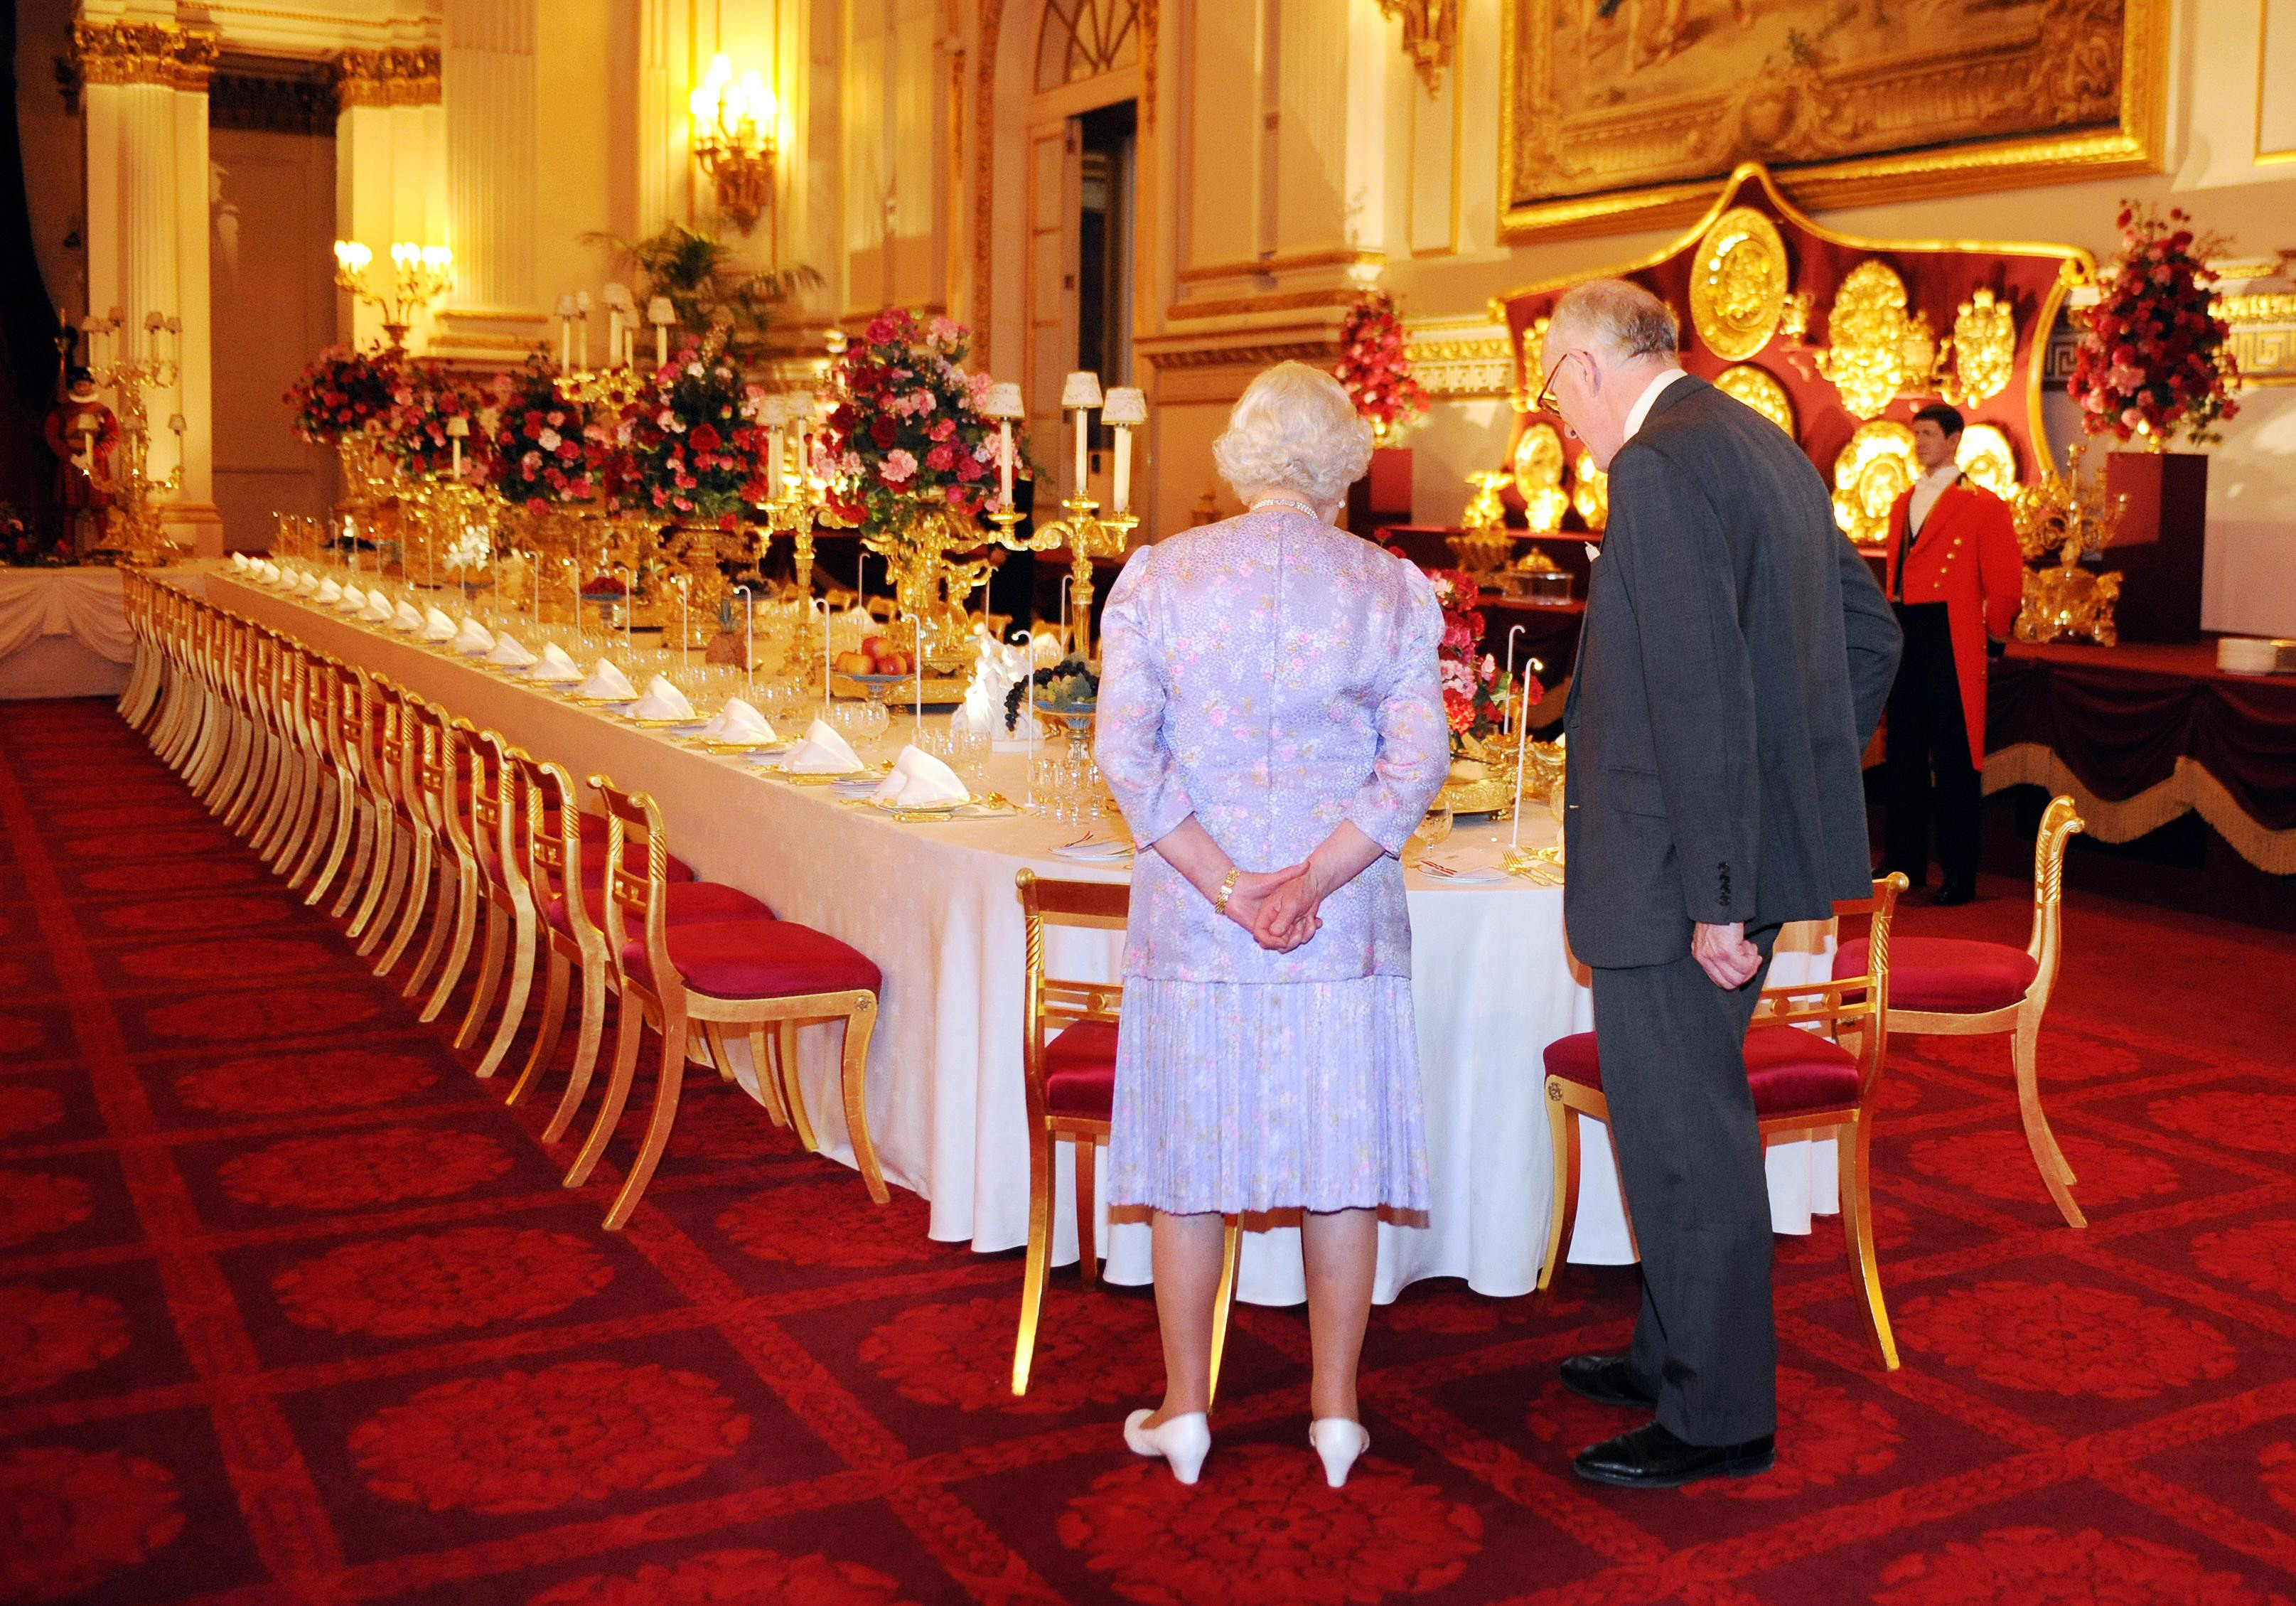 Trump Attends State Banquet Hosted by Queen Elizabeth II